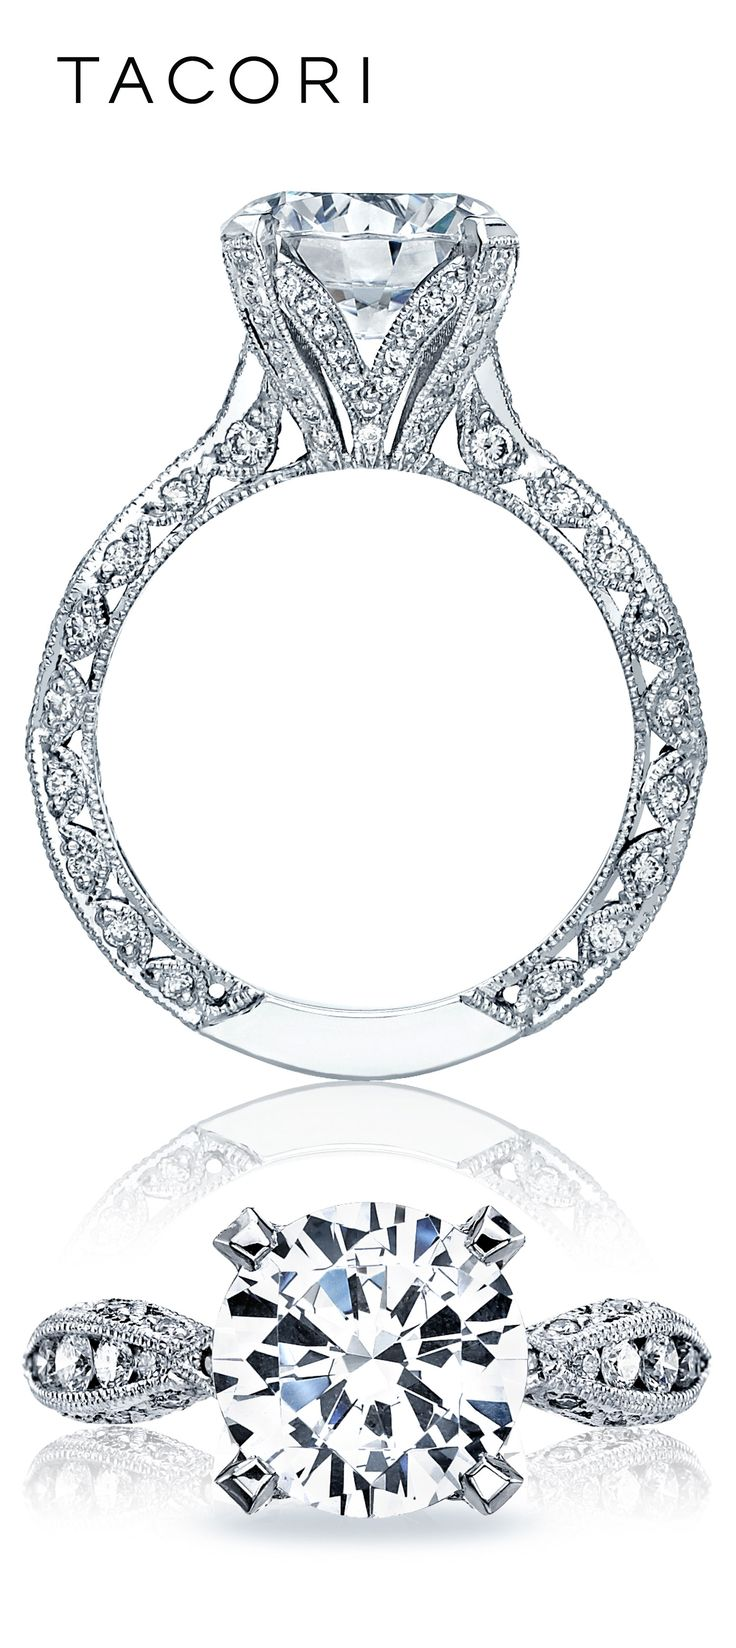 """A Tacori Girl favorite is further beautified in the """"RoyalT"""" collection, taking the popular pave-set ribbon band and enhancing it for a 3.50 carat brilliant round center stone. The intricate 4-pronged, pave set gallery beneath the center diamond is evocative of a budding flower reaching ultimate beauty. Can you say breathtaking?"""